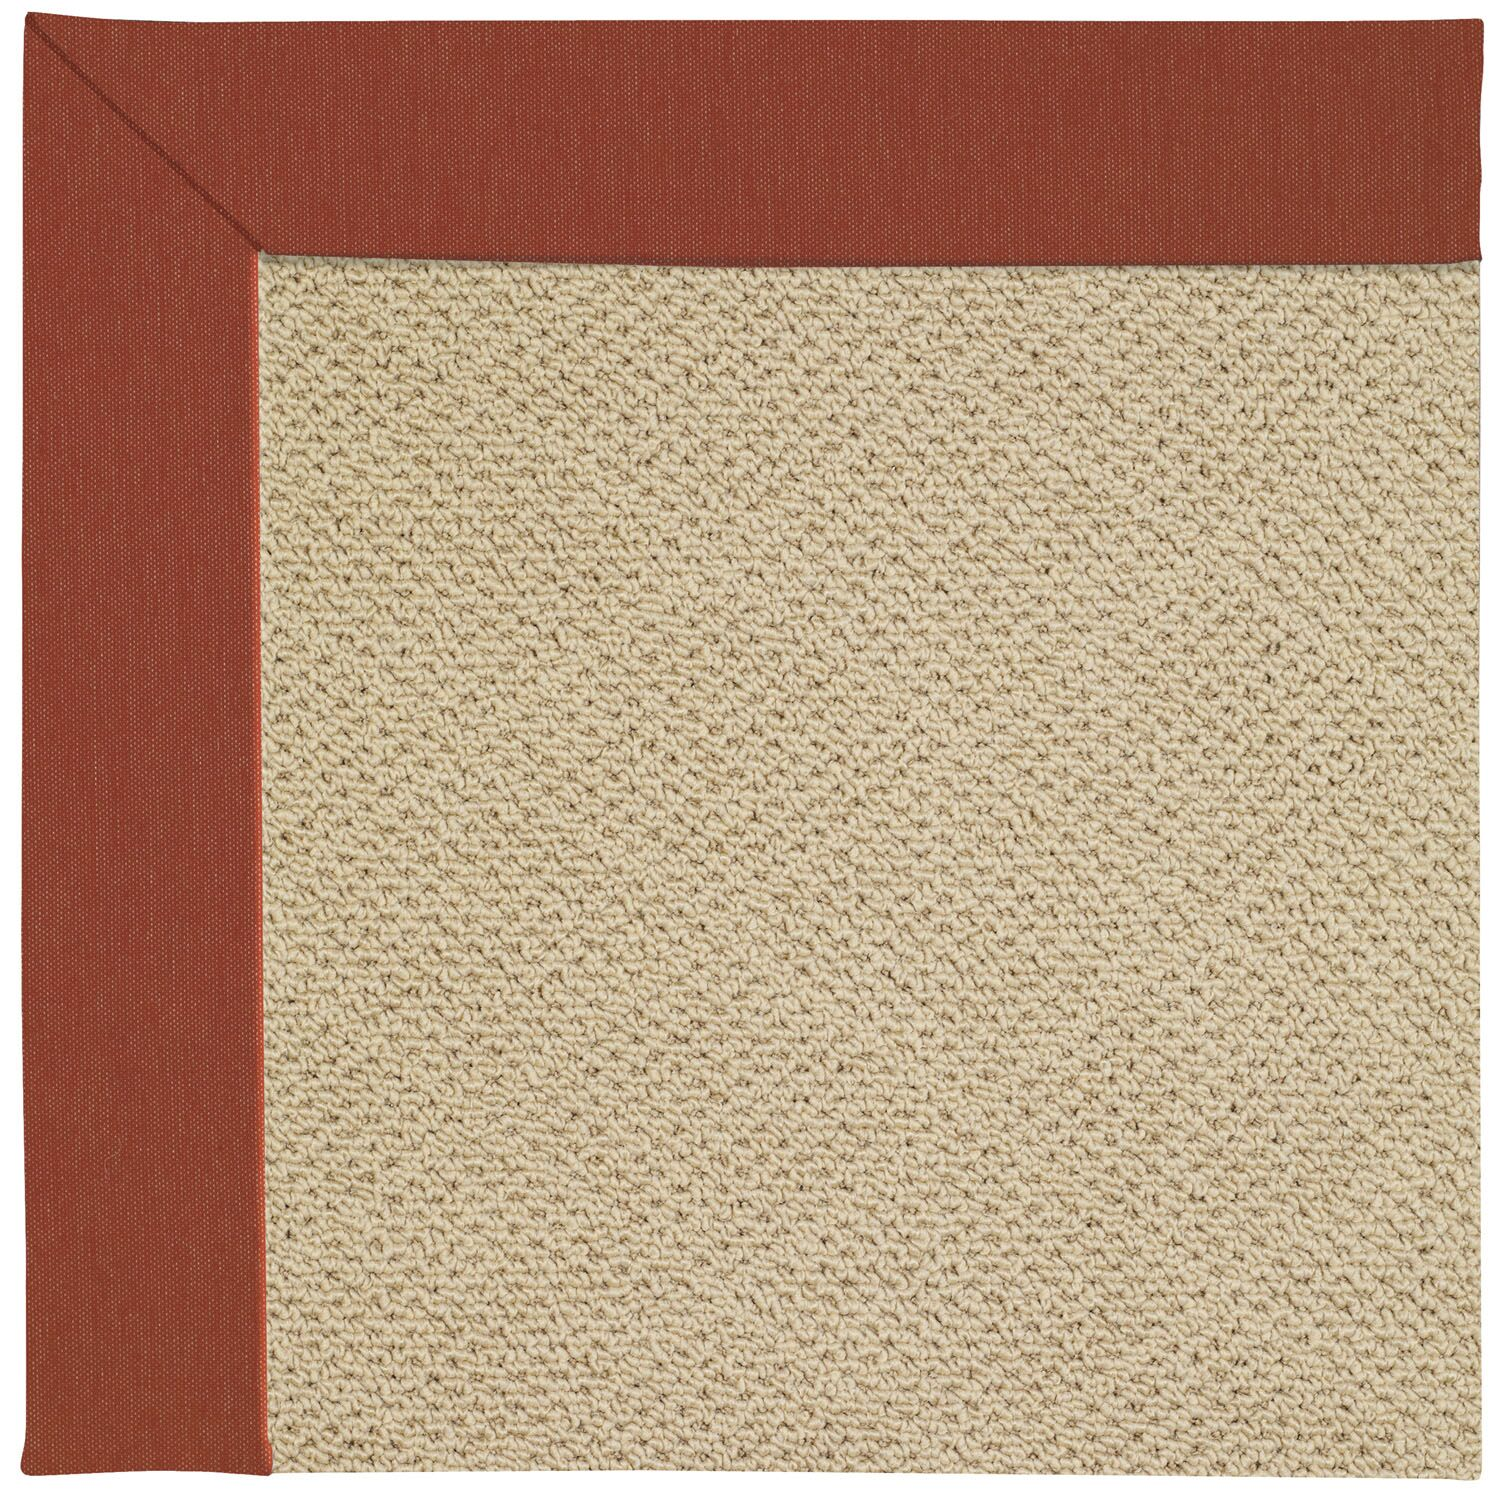 Lisle Machine Tufted Strawberry Indoor/Outdoor Area Rug Rug Size: Rectangle 2' x 3'